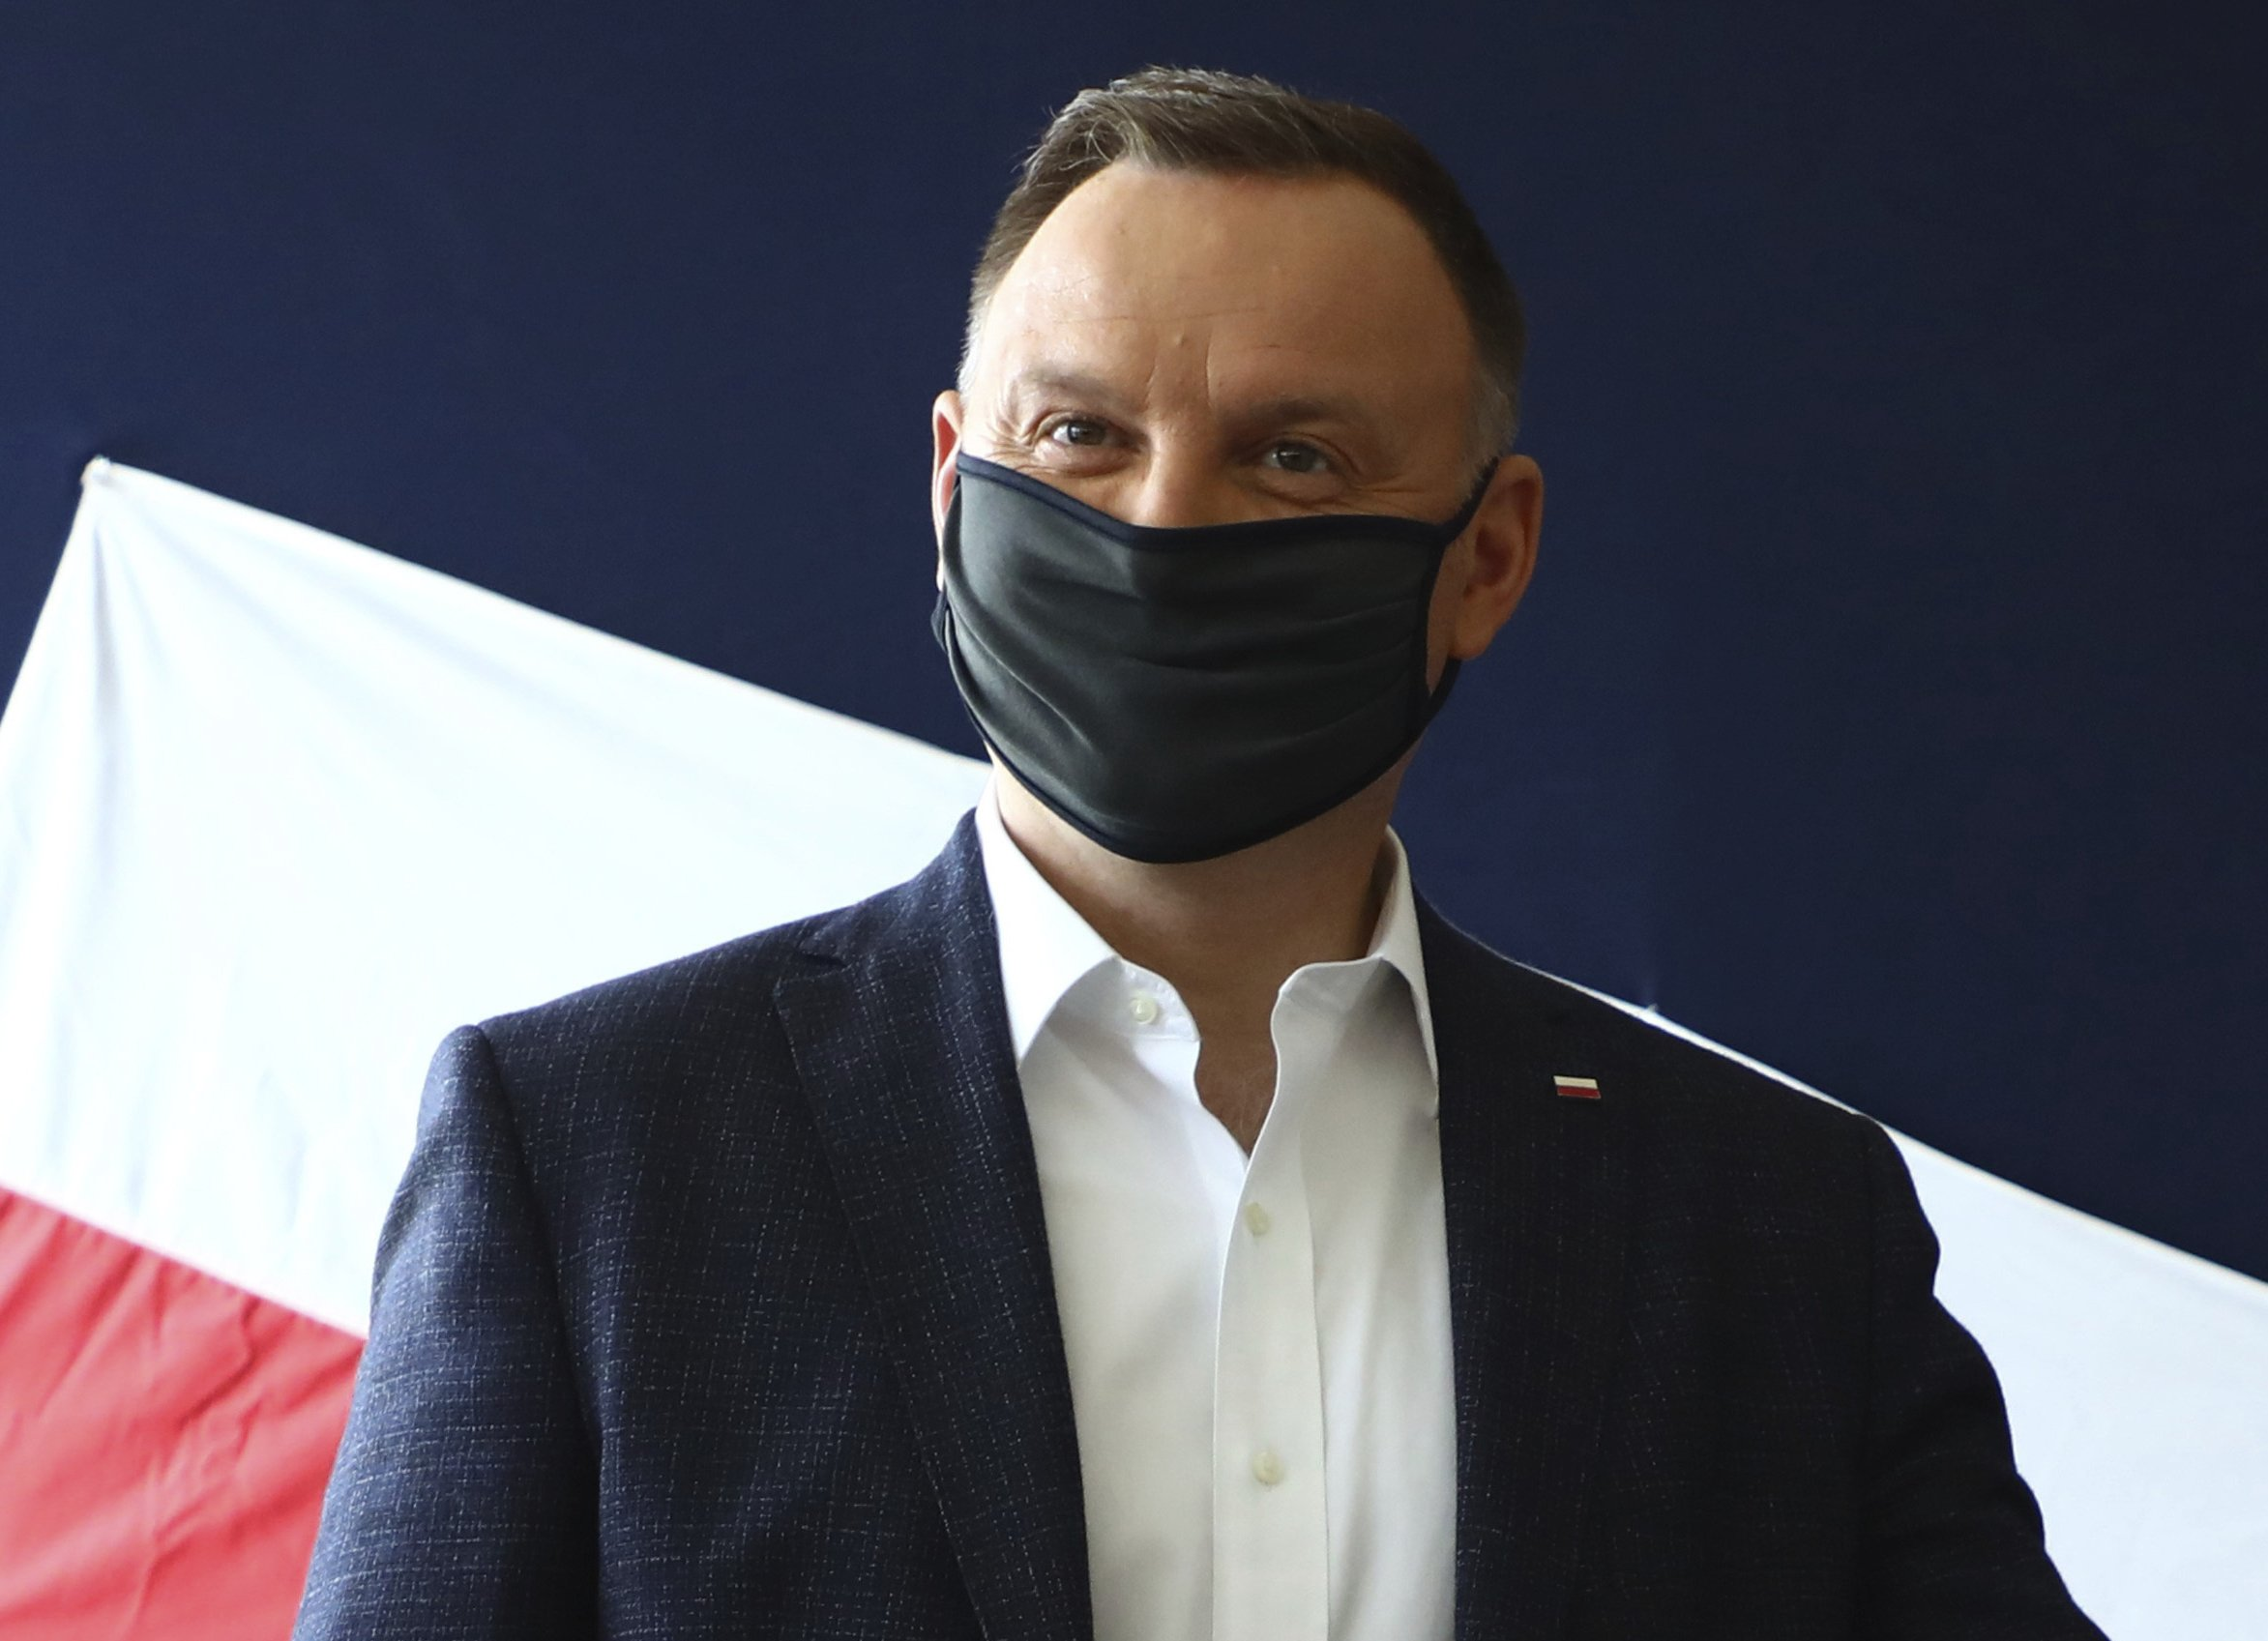 Poland's President Andrzej Duda has tested positive for the coronavirus, his spokesman said on Twitter, adding that he is well and in isolation. Duda's diagnosis comes amid a surge in the number of confirmed new infections and virus deaths in Poland.